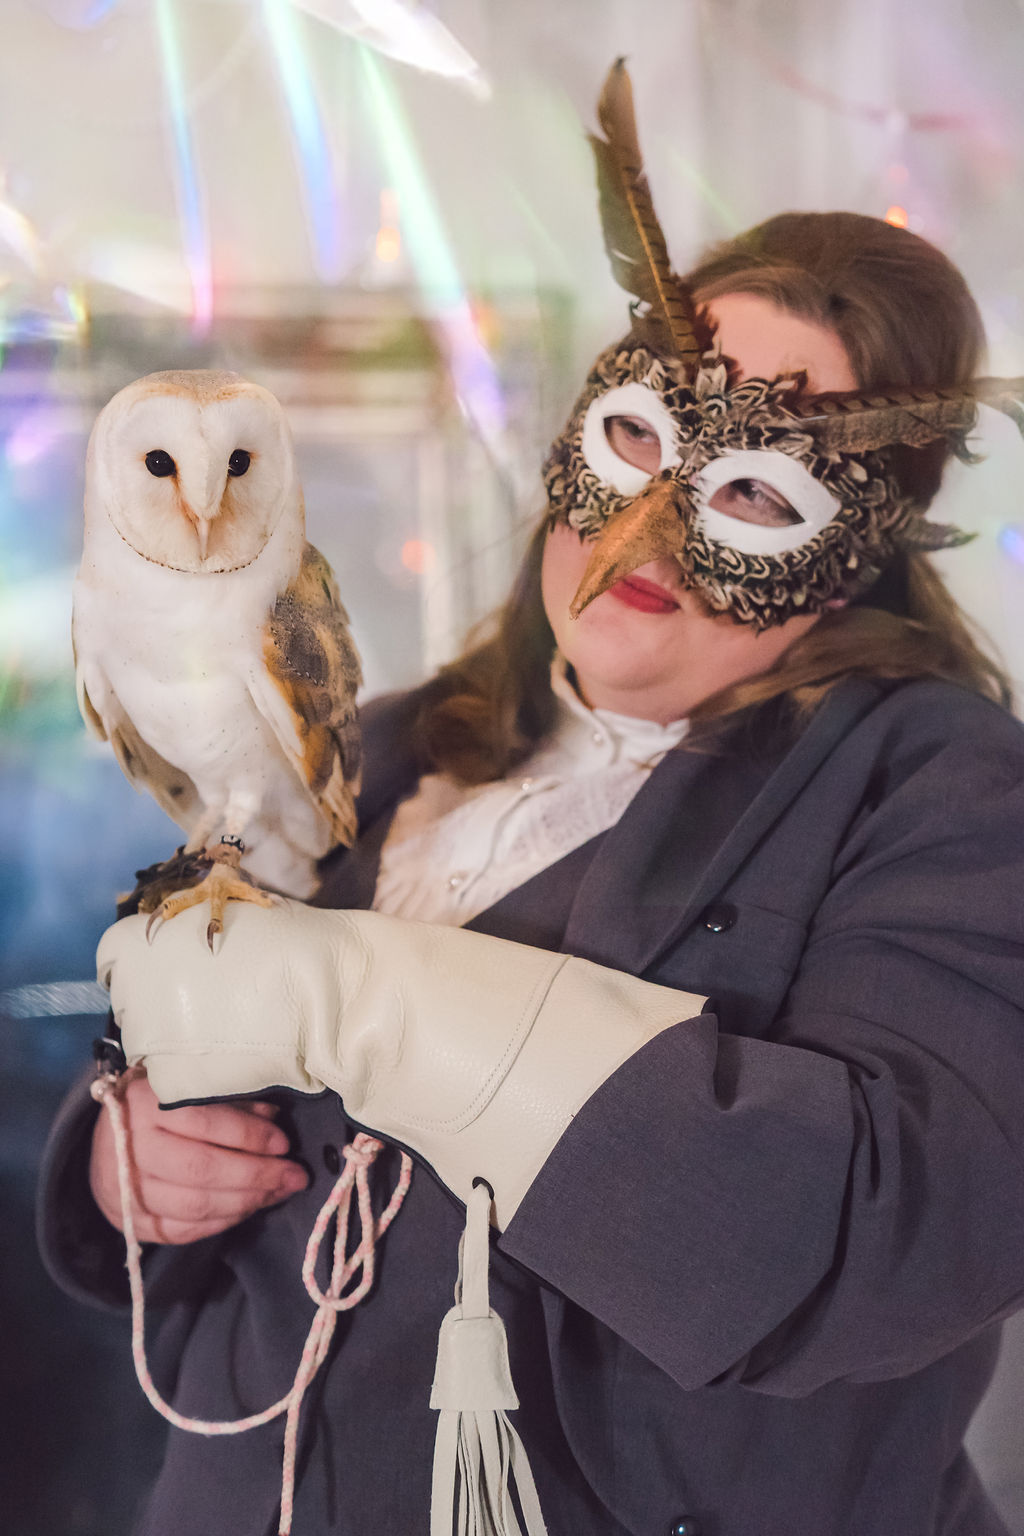 Ceremonies by Leni Robson wearing mask with Owl for alternative & unique wedding ceremonies